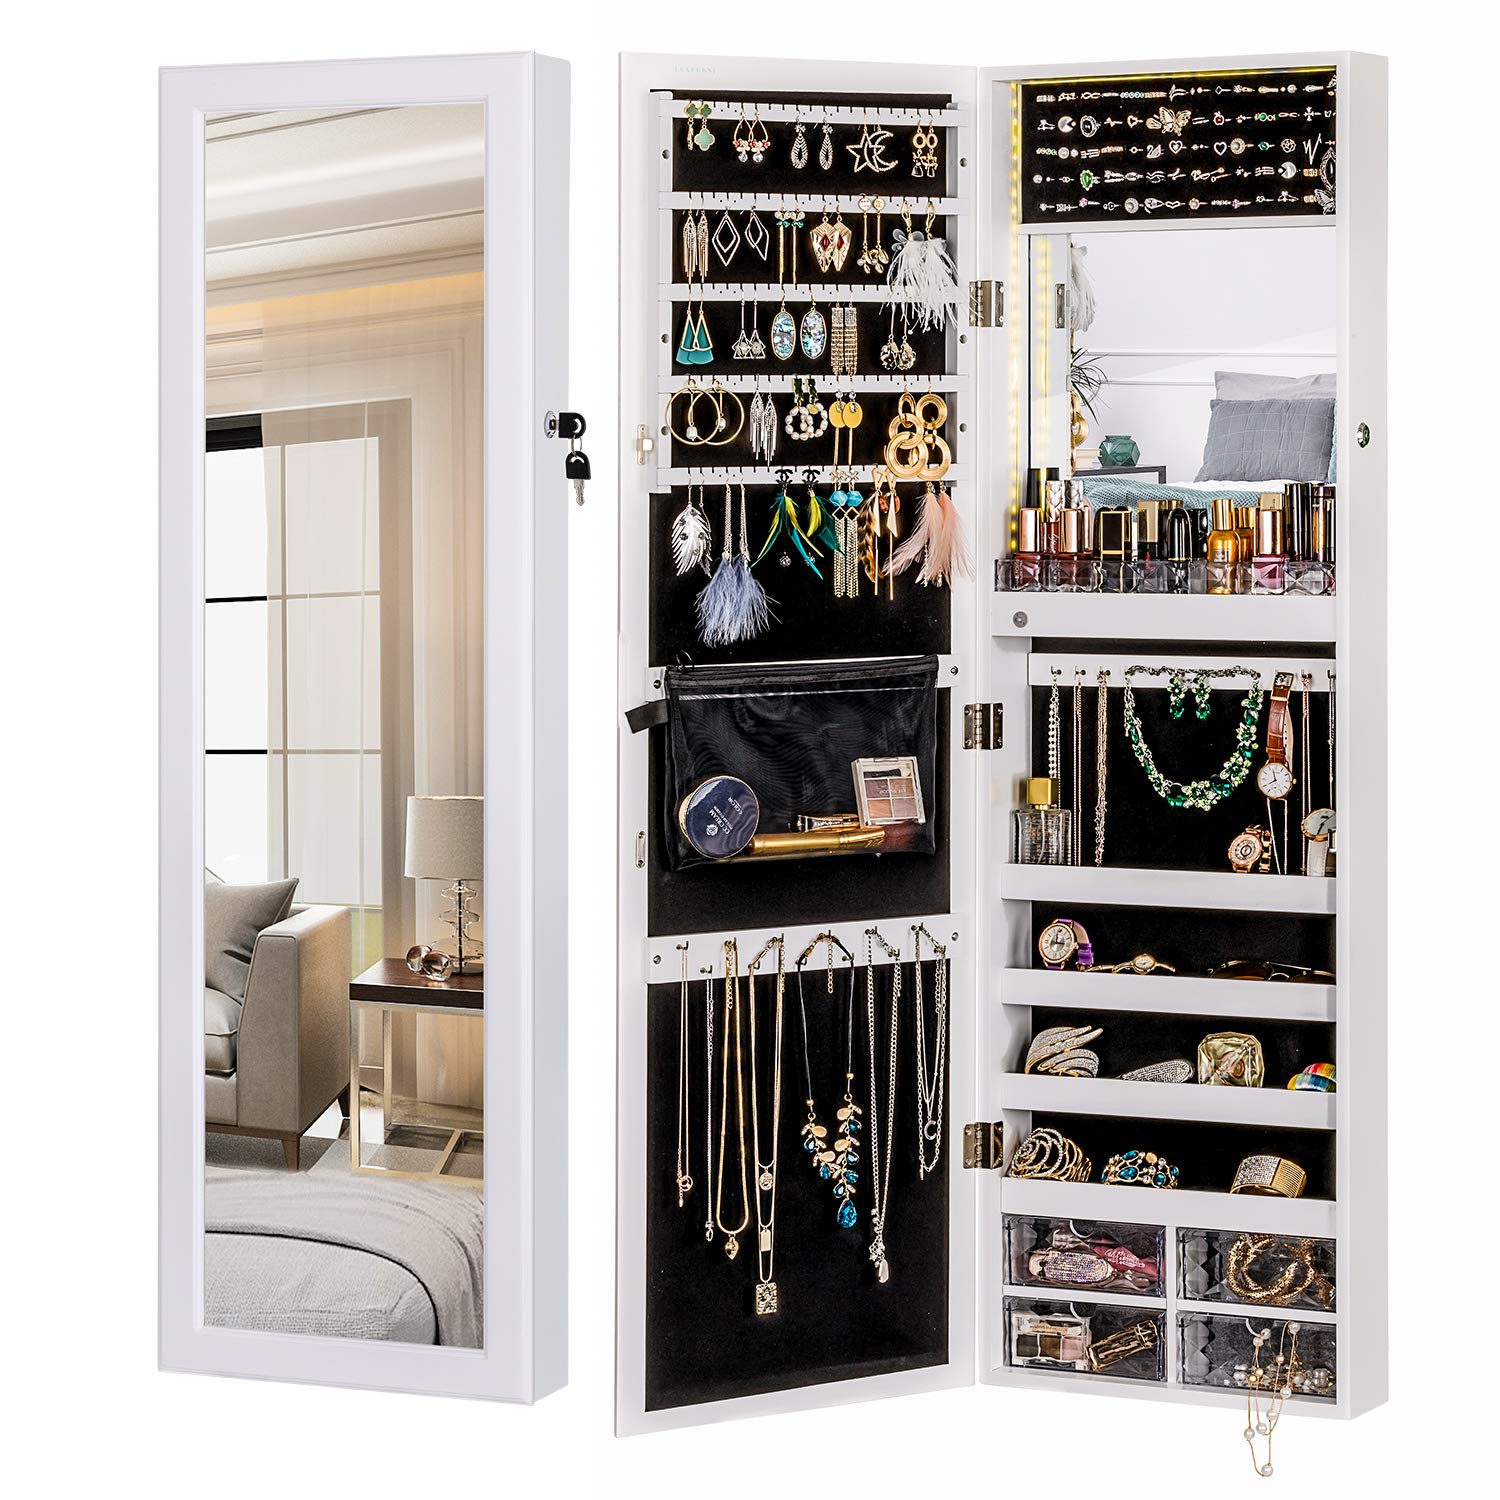 LUXFURNI LED Light Jewelry Cabinet Standing Mirror Makeup Lockable Armoire, Large Storage Organizer w/Drawers (white, M)